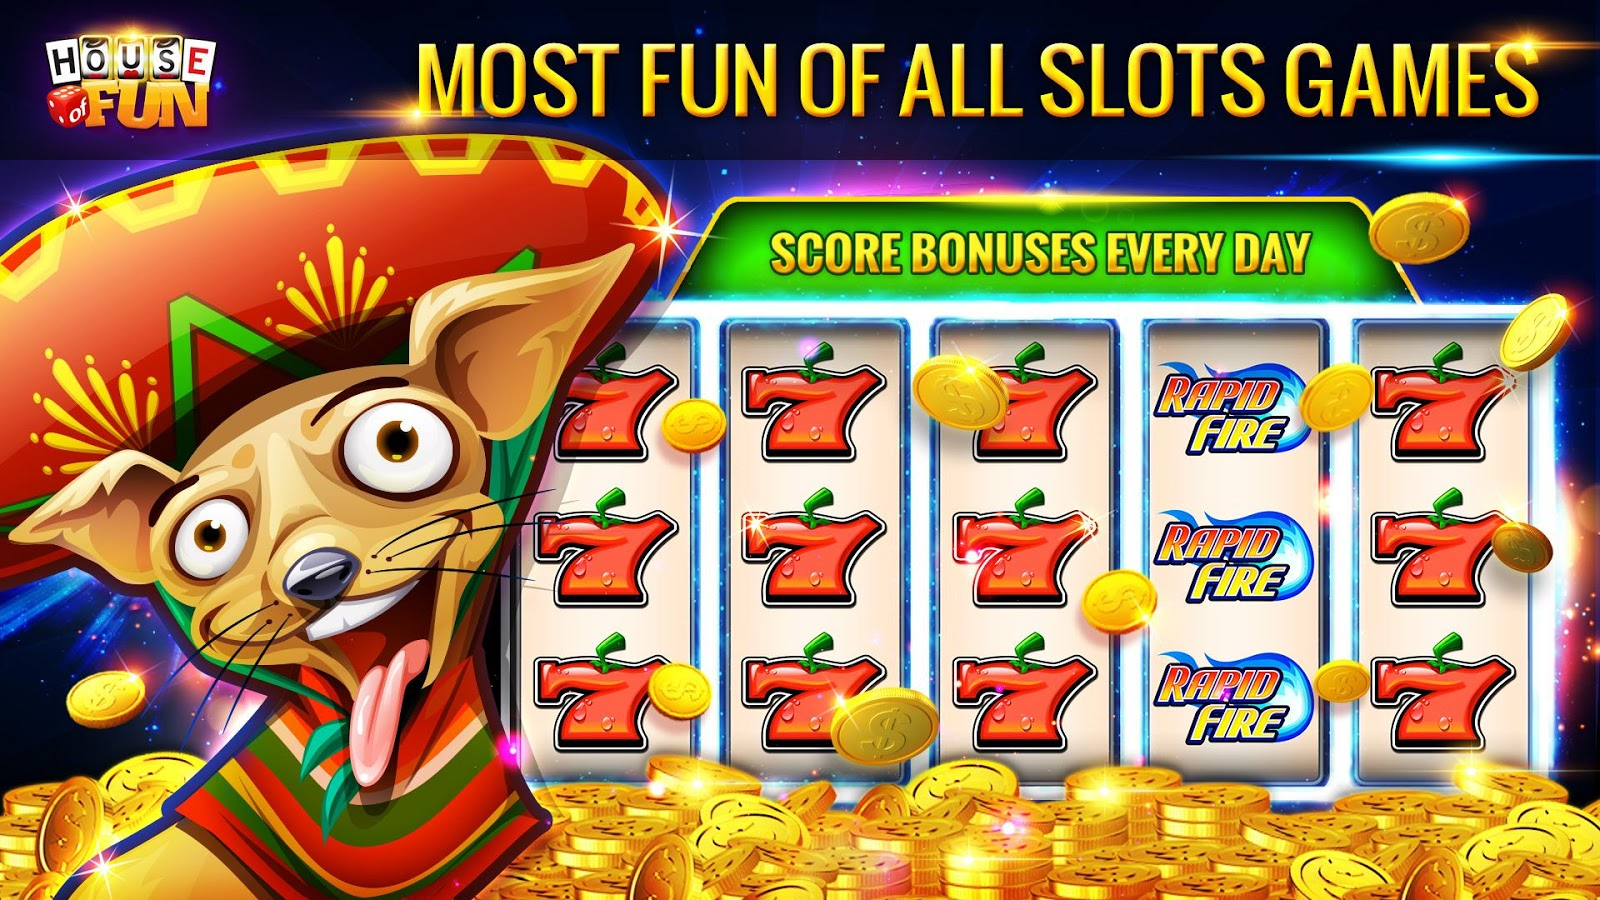 Slots for Fun: Slotomania Unique Features